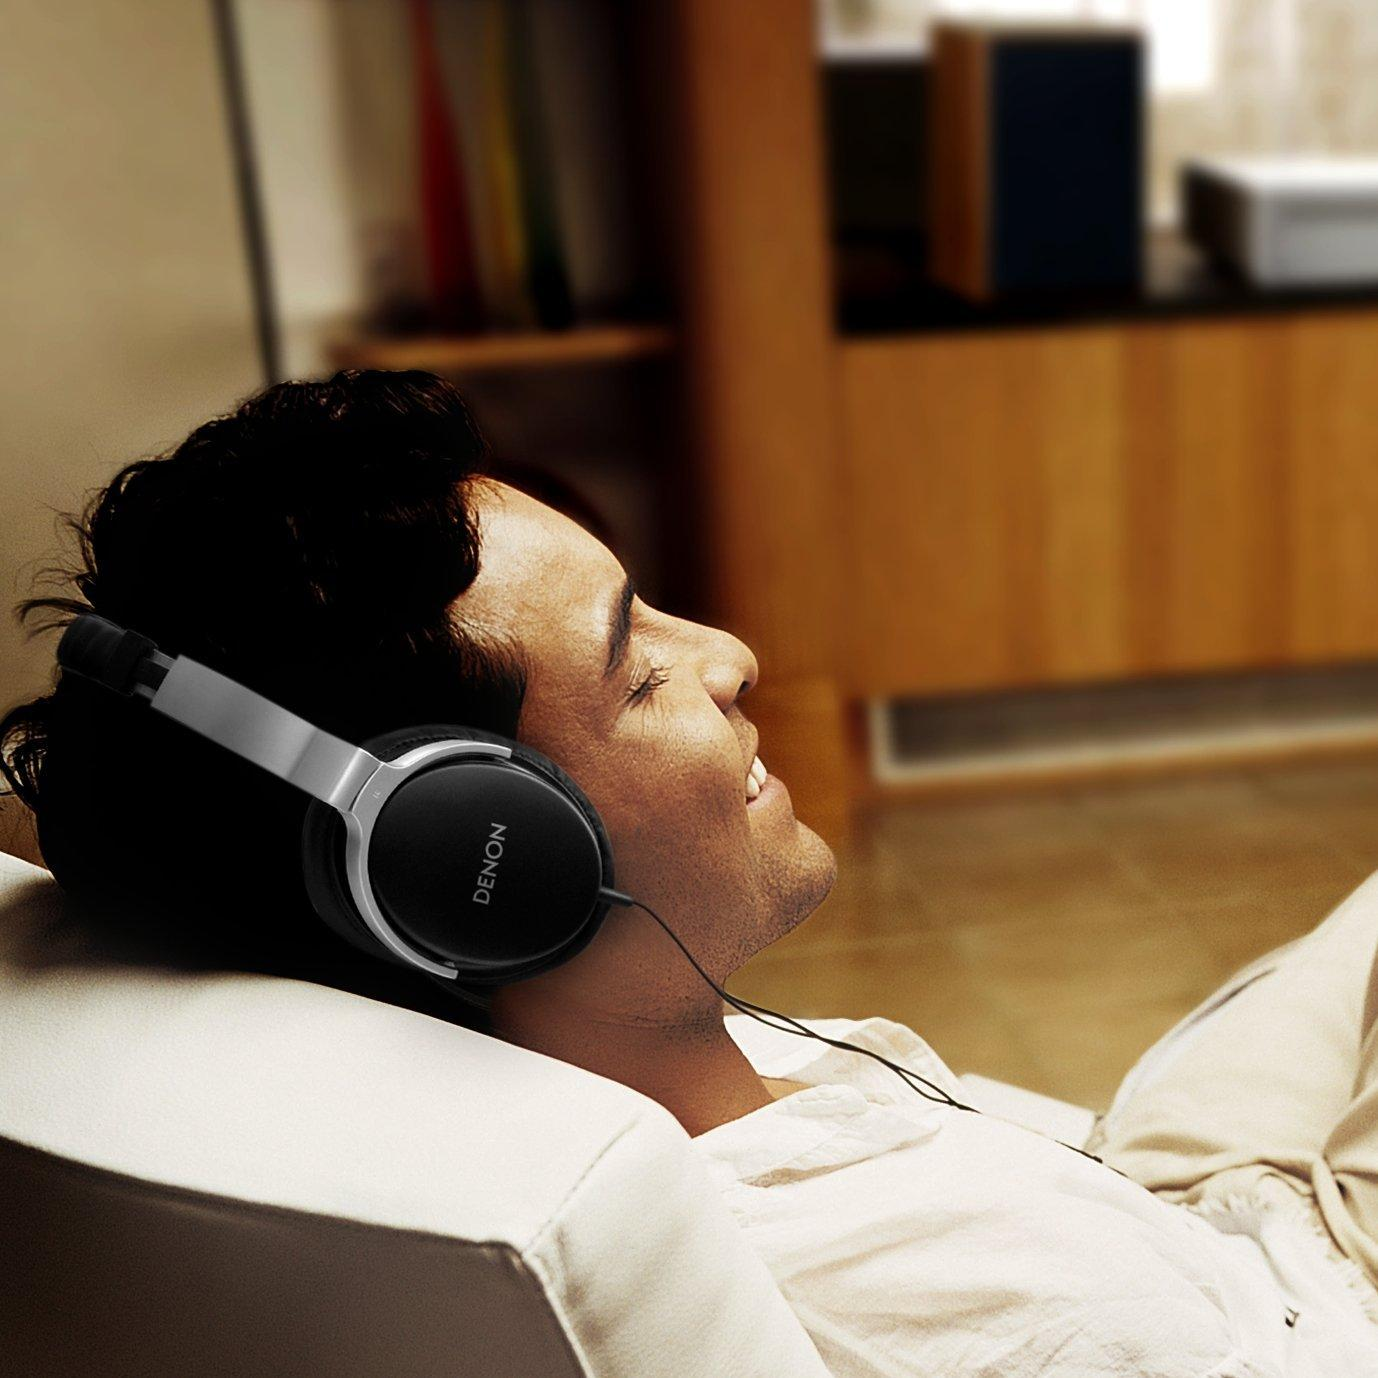 JPY 7,729/$75.38 DENON AH-D1100 Over-Ear Headphones